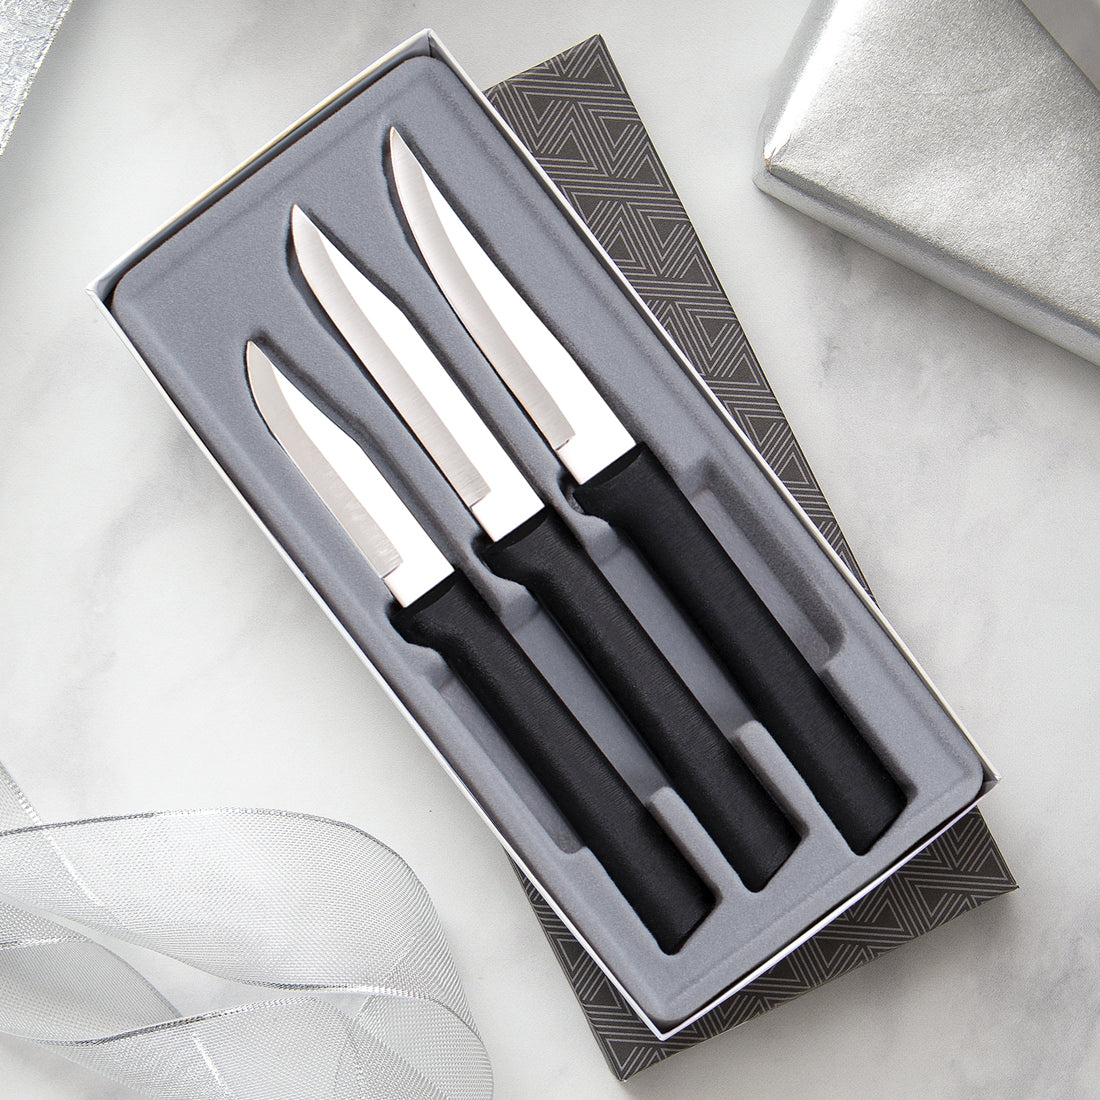 Rada Cutlery Paring knives Galore Gift Set with black handles.